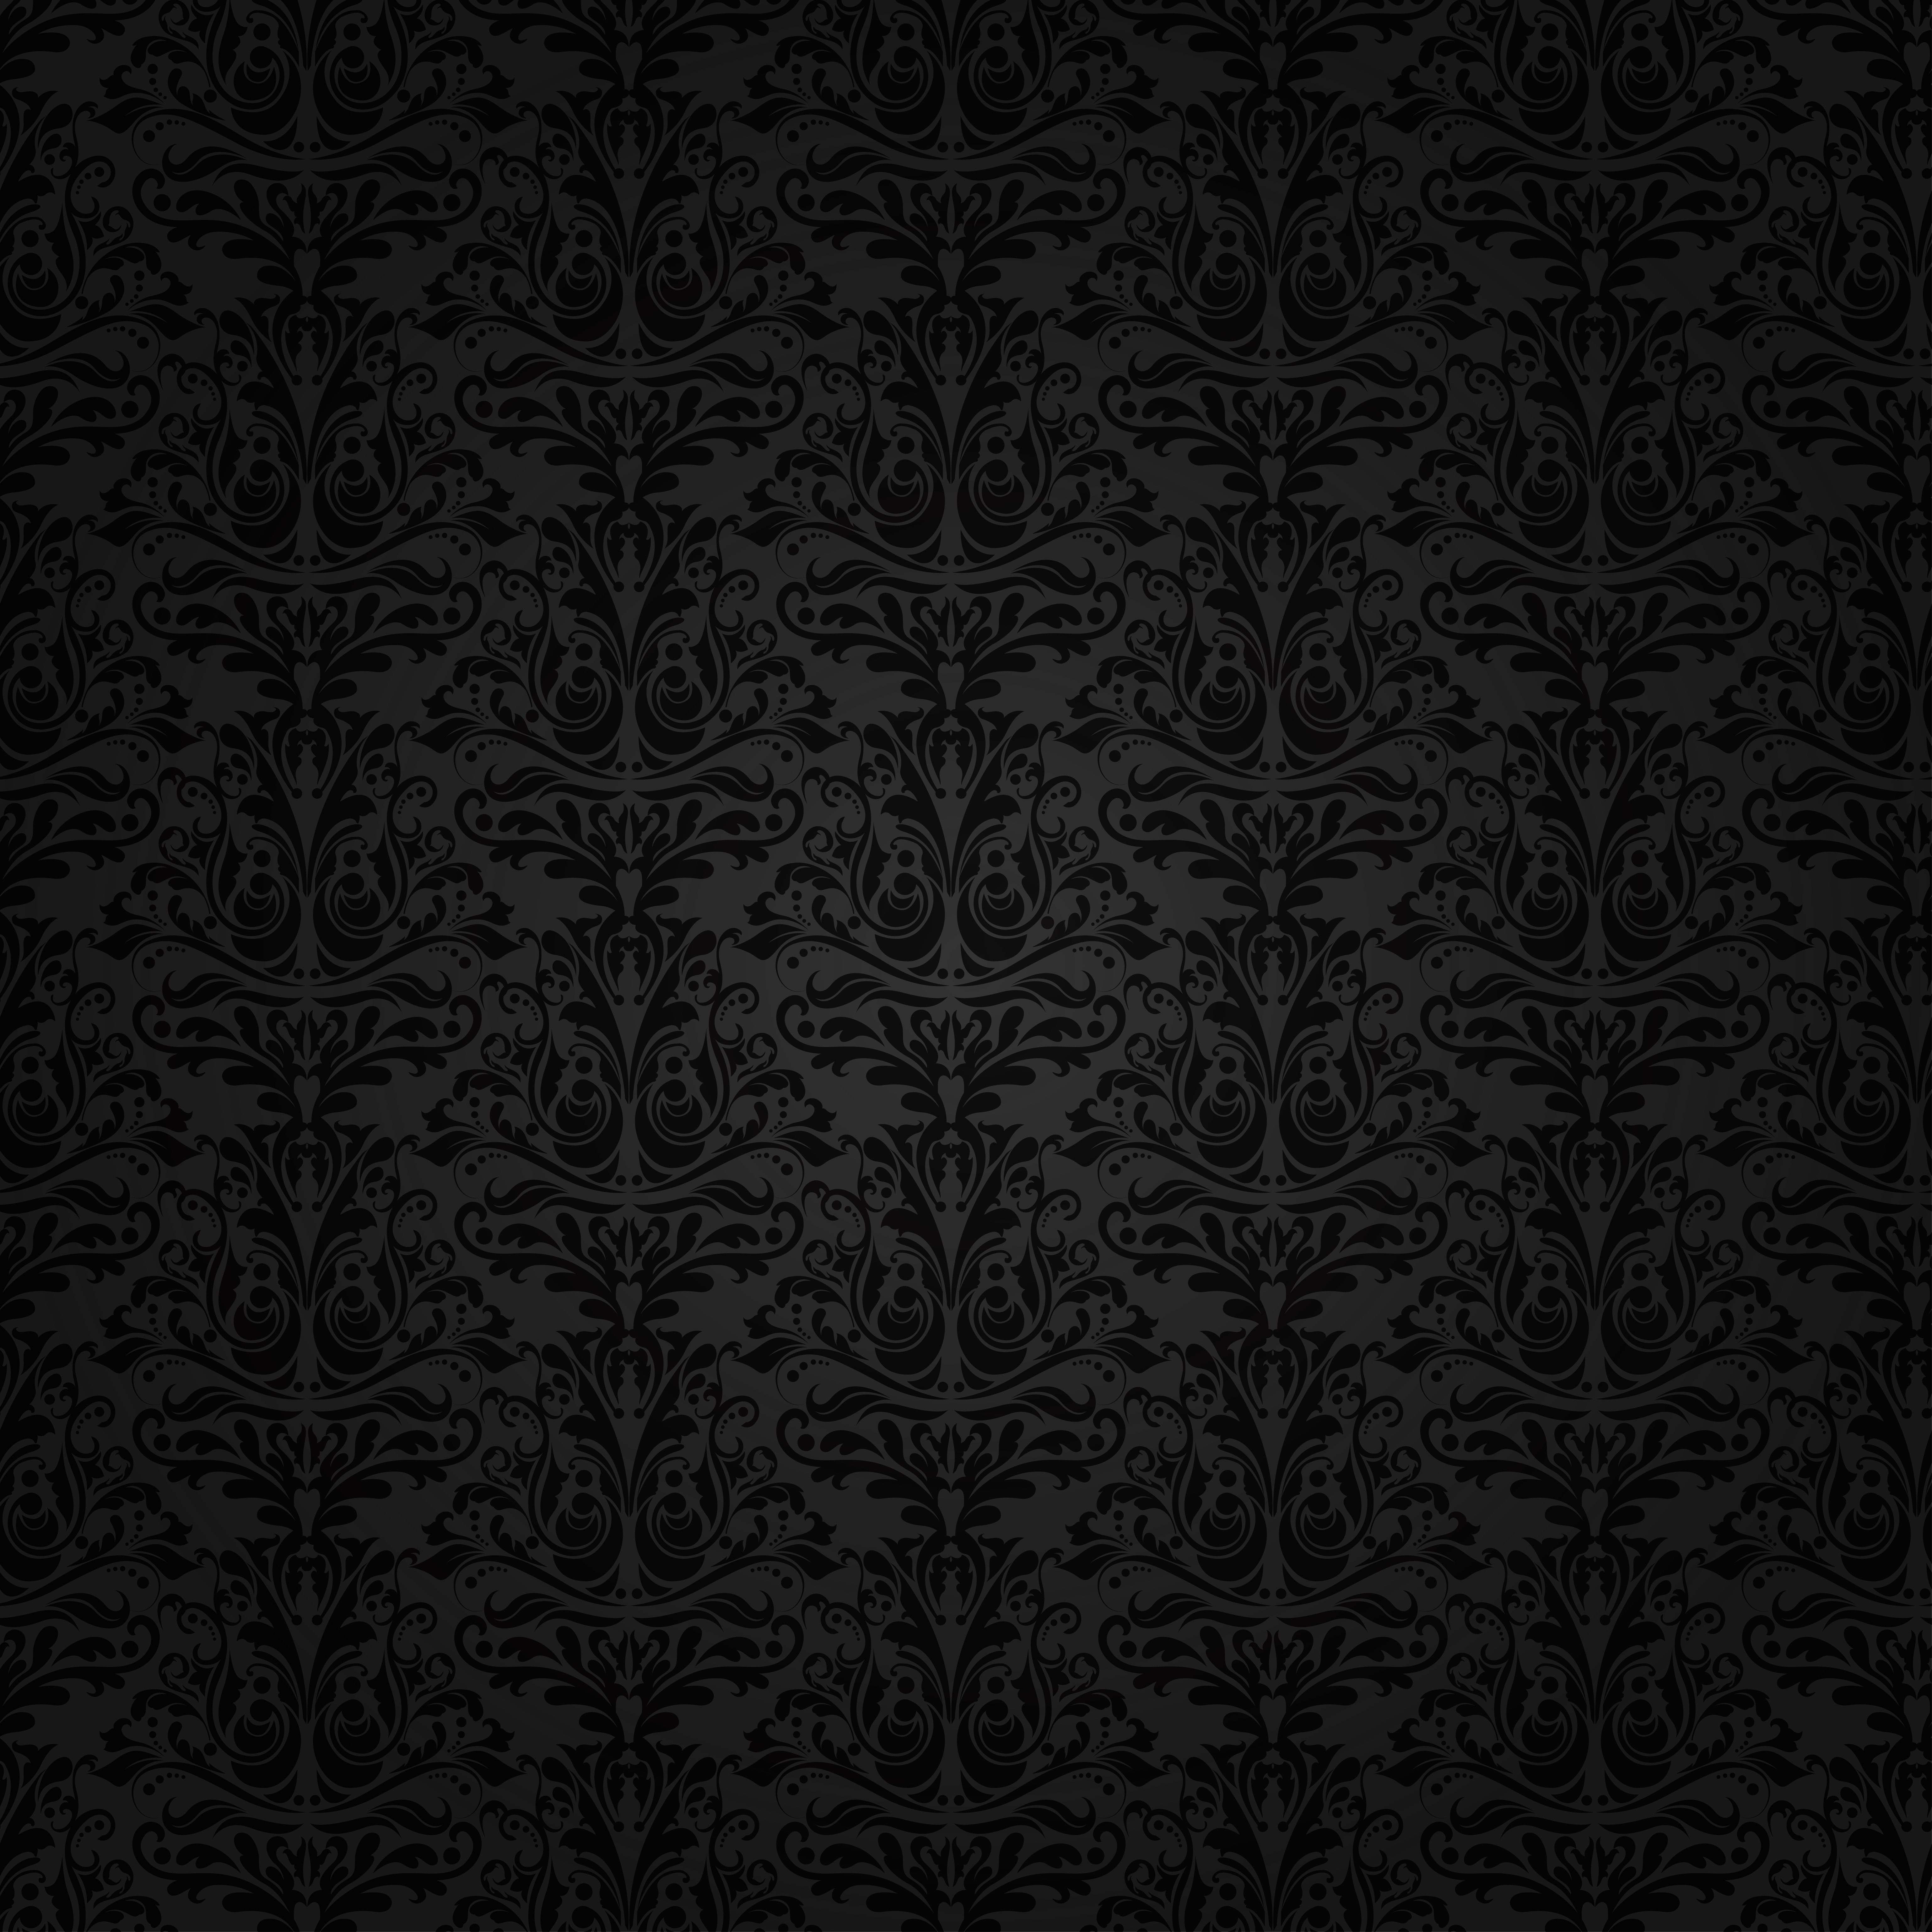 Black Background With Ornaments Gallery Yopriceville High Quality Images And Transpare Black Texture Background Background For Photography Free Vector Art